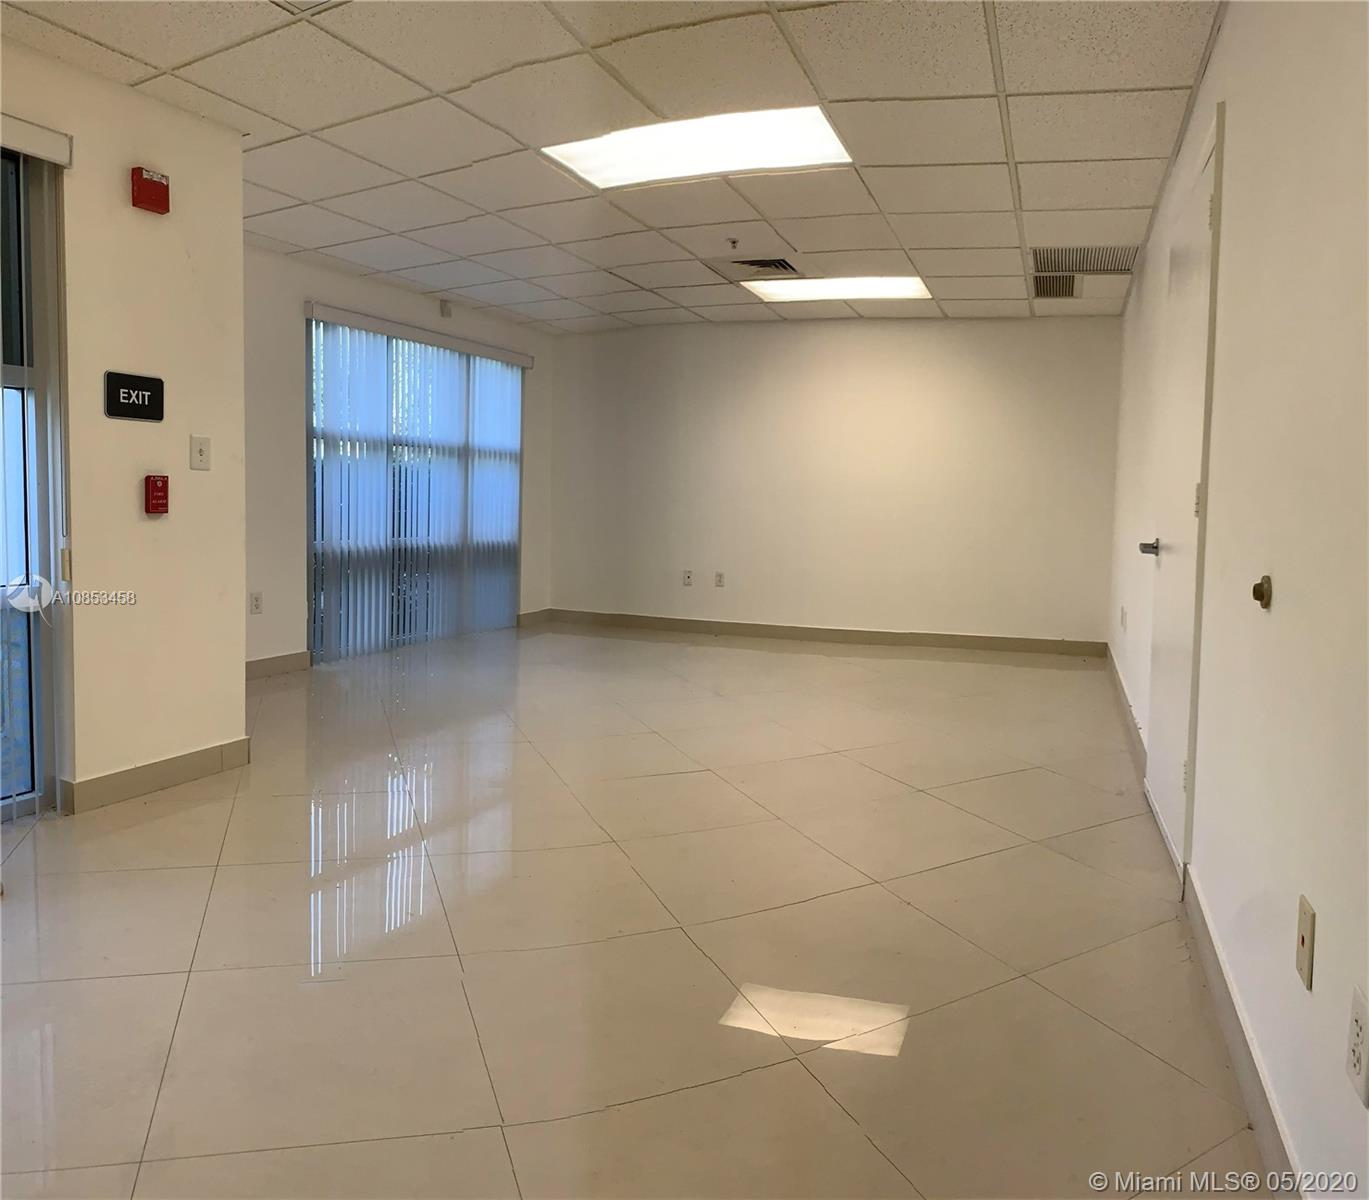 1835 NW 112th Ave, Sweetwater, Florida 33172, ,Commercial Land,For Sale,1835 NW 112th Ave,A10853458